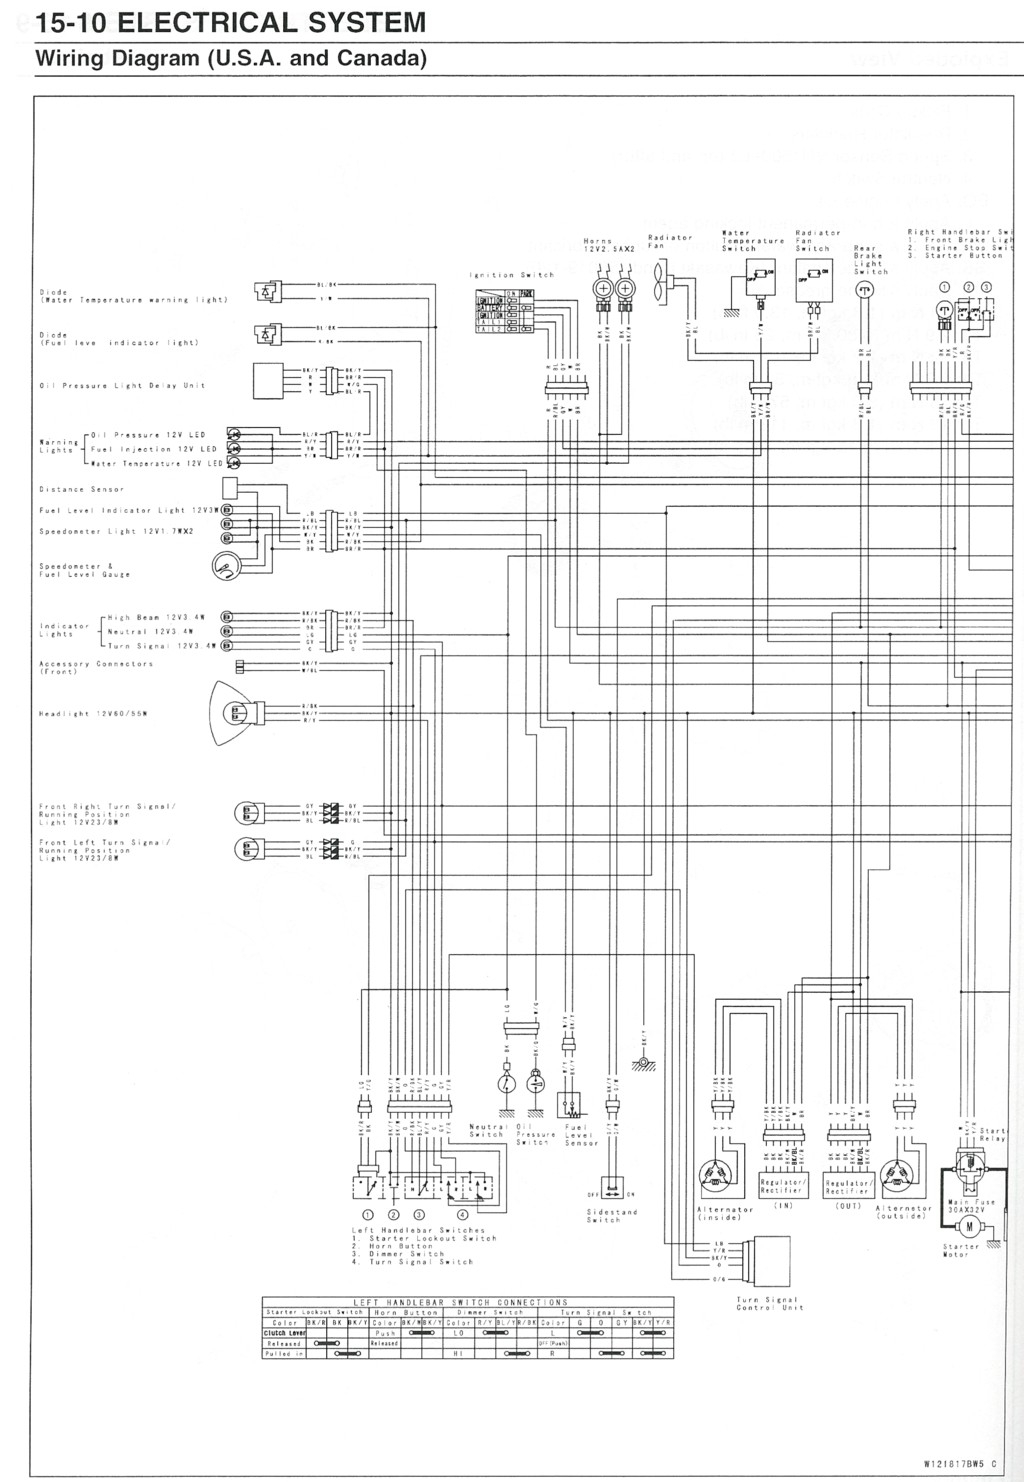 nomad_wiring_diagram_carbed_p1 vulcan wiring diagrams gadget's fixit page Kawasaki Vulcan 1500 Wiring Diagram at gsmx.co